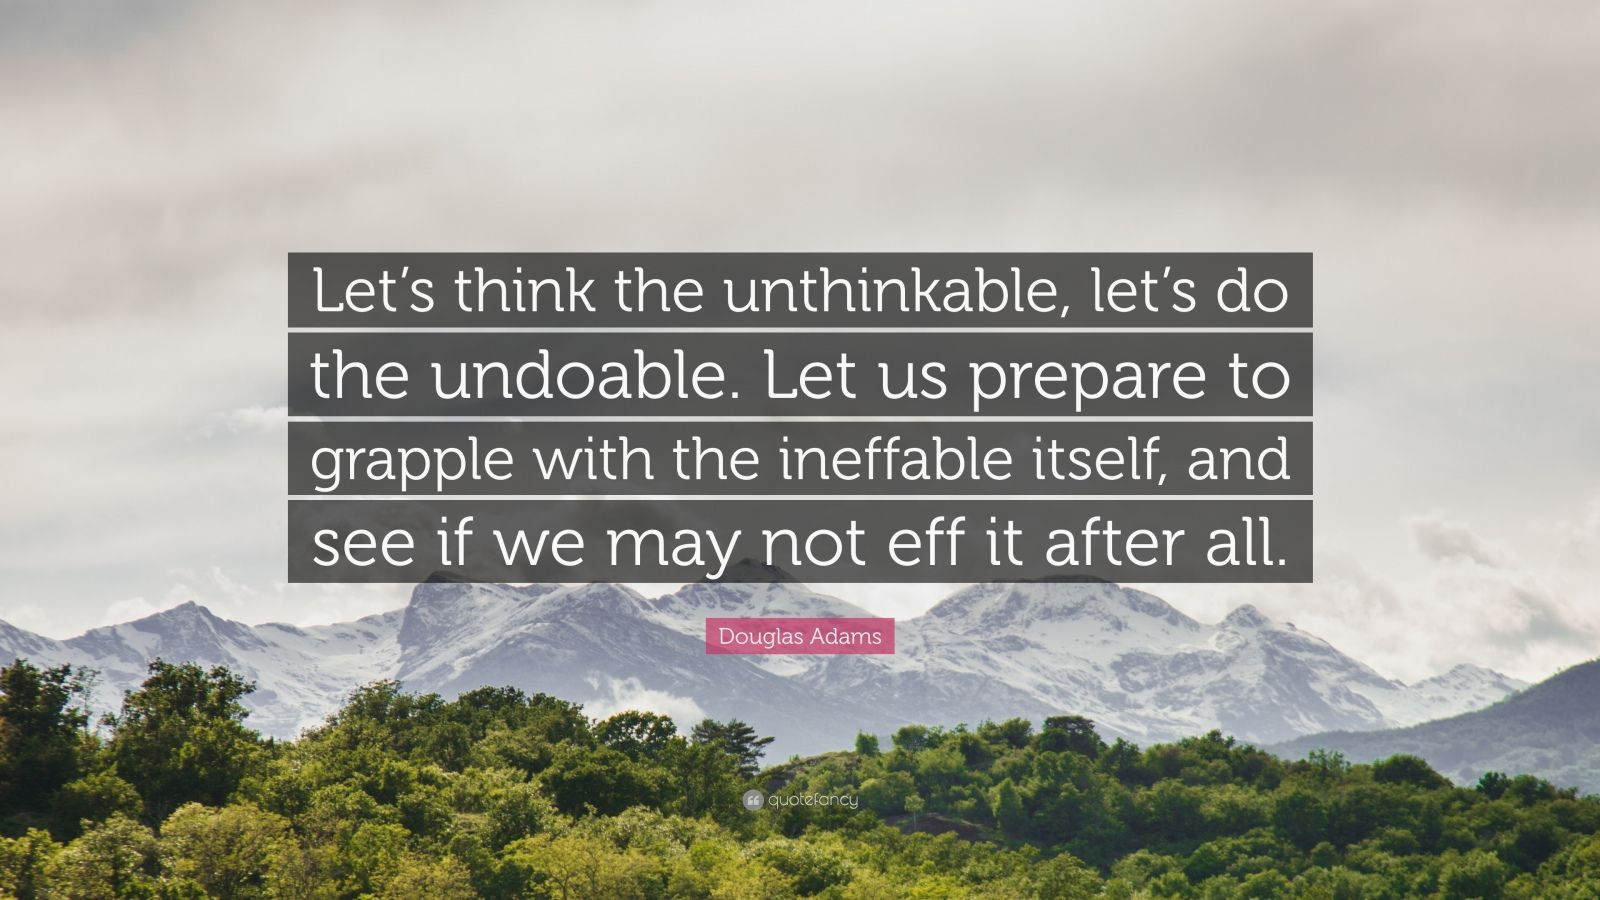 "Douglas Adams Quote: ""Let's think the unthinkable, let's do the undoable. Let us prepare to grapple with the ineffable itself, and see if we may not eff it after all."""